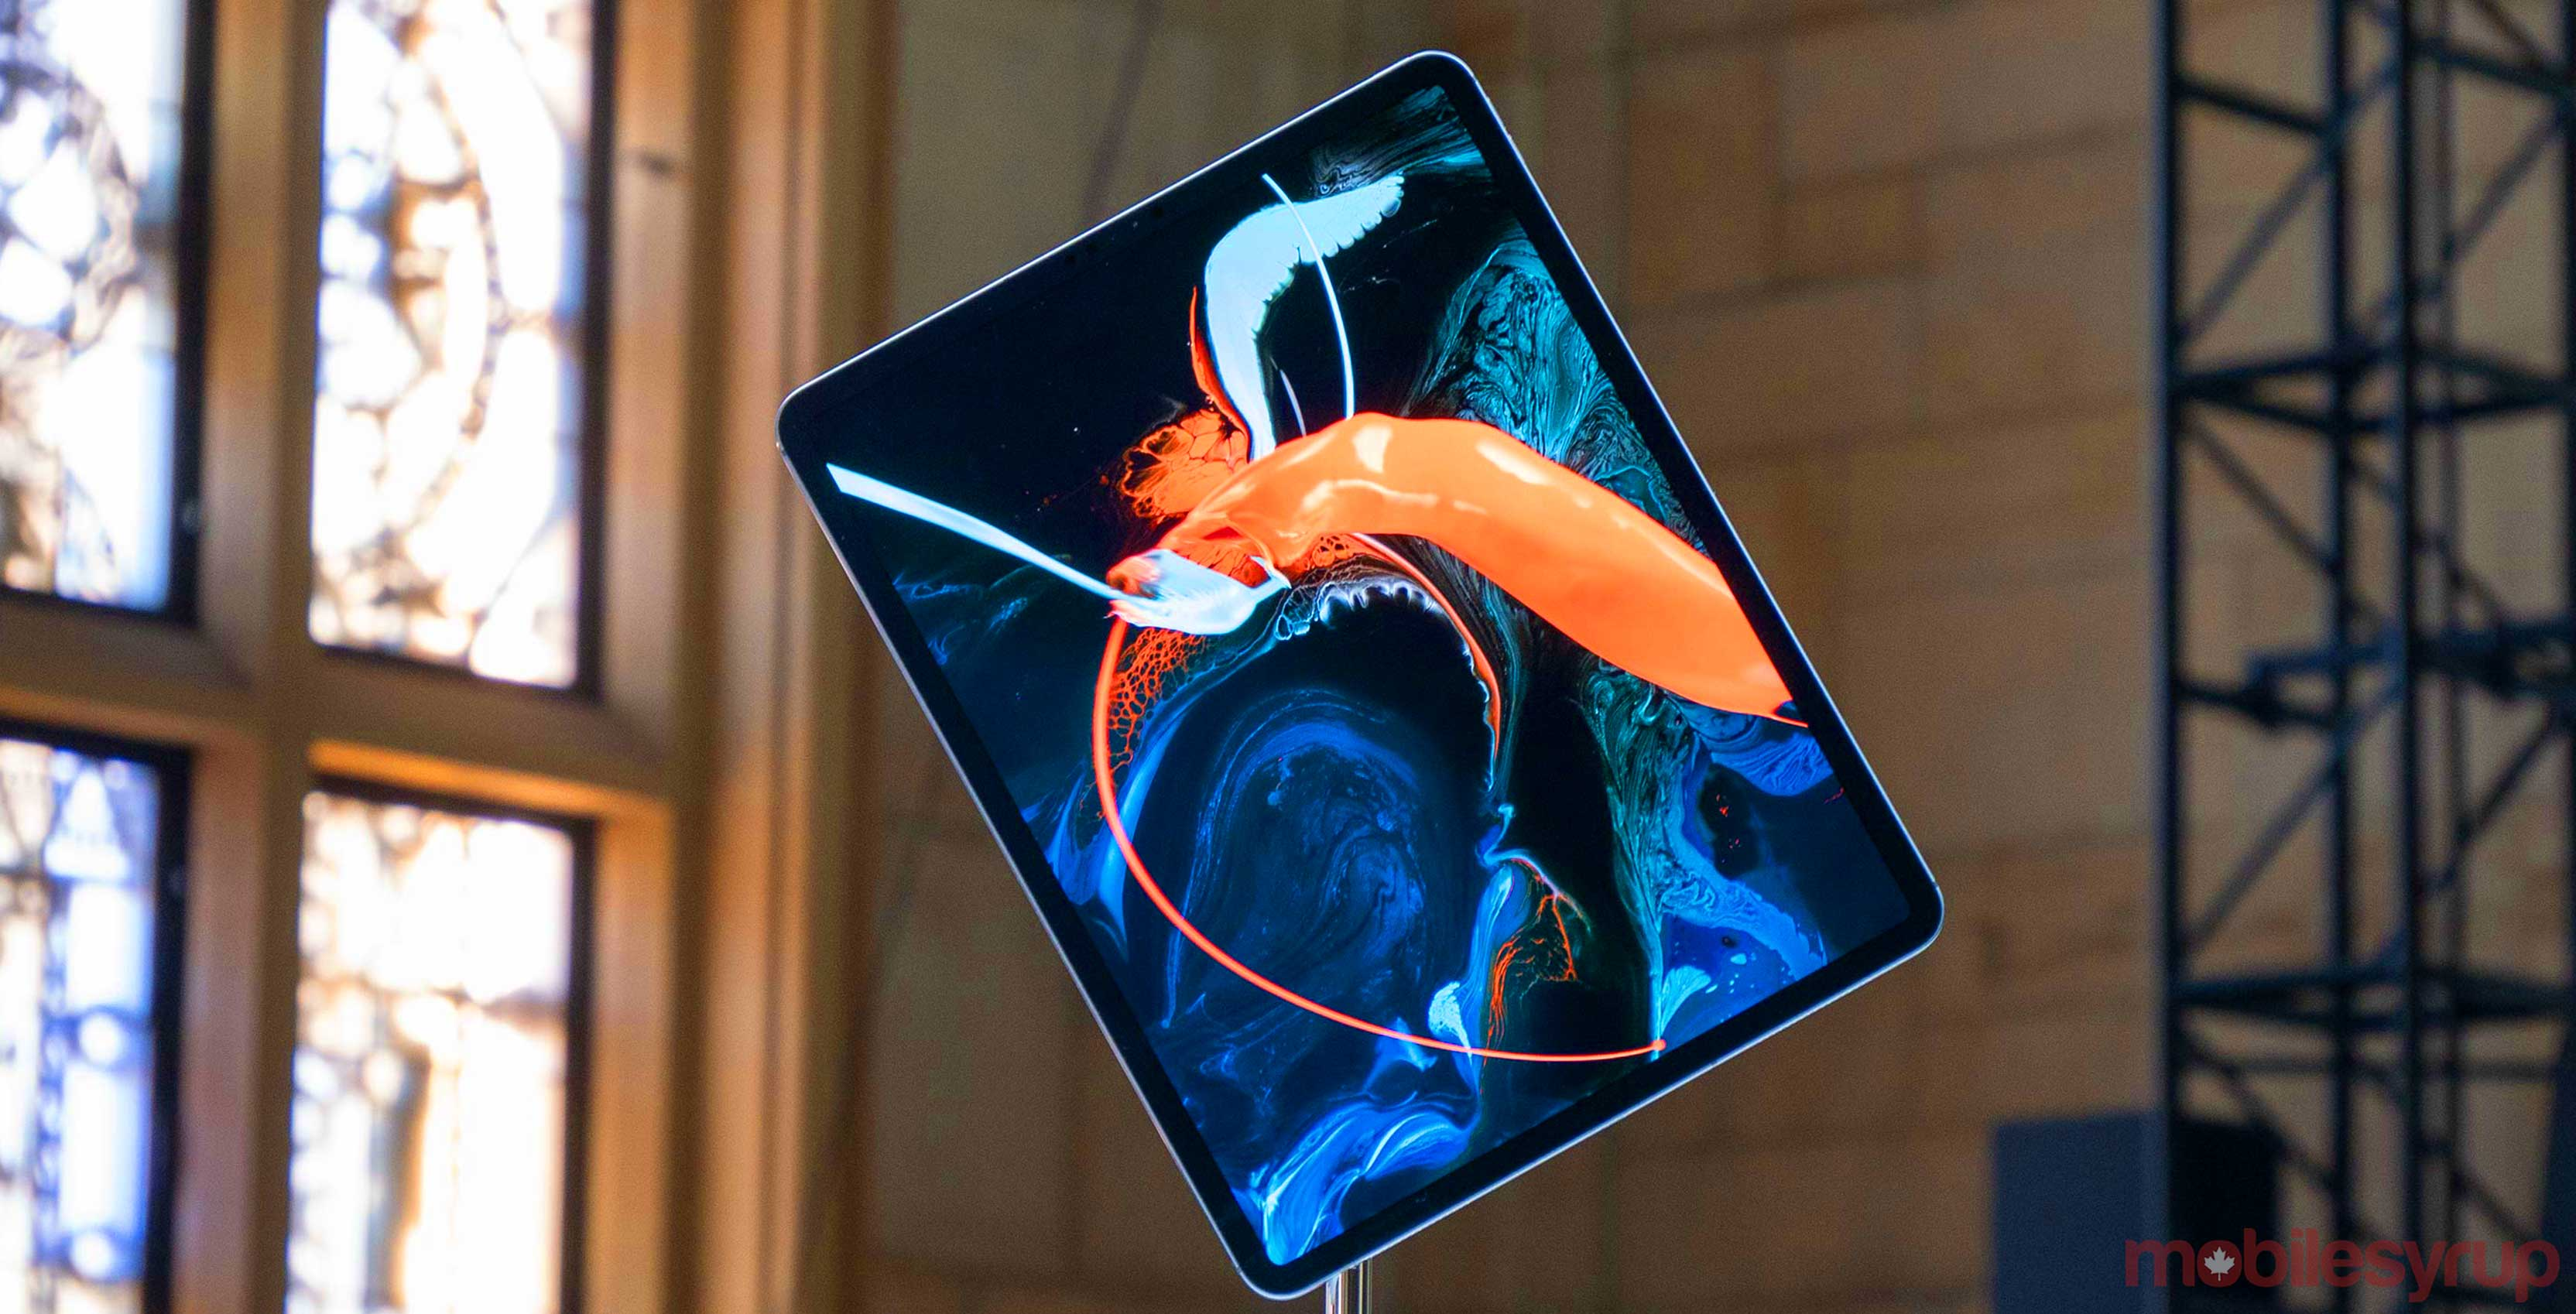 iPad Pro leak suggests Apple's next tablet could sport three cameras